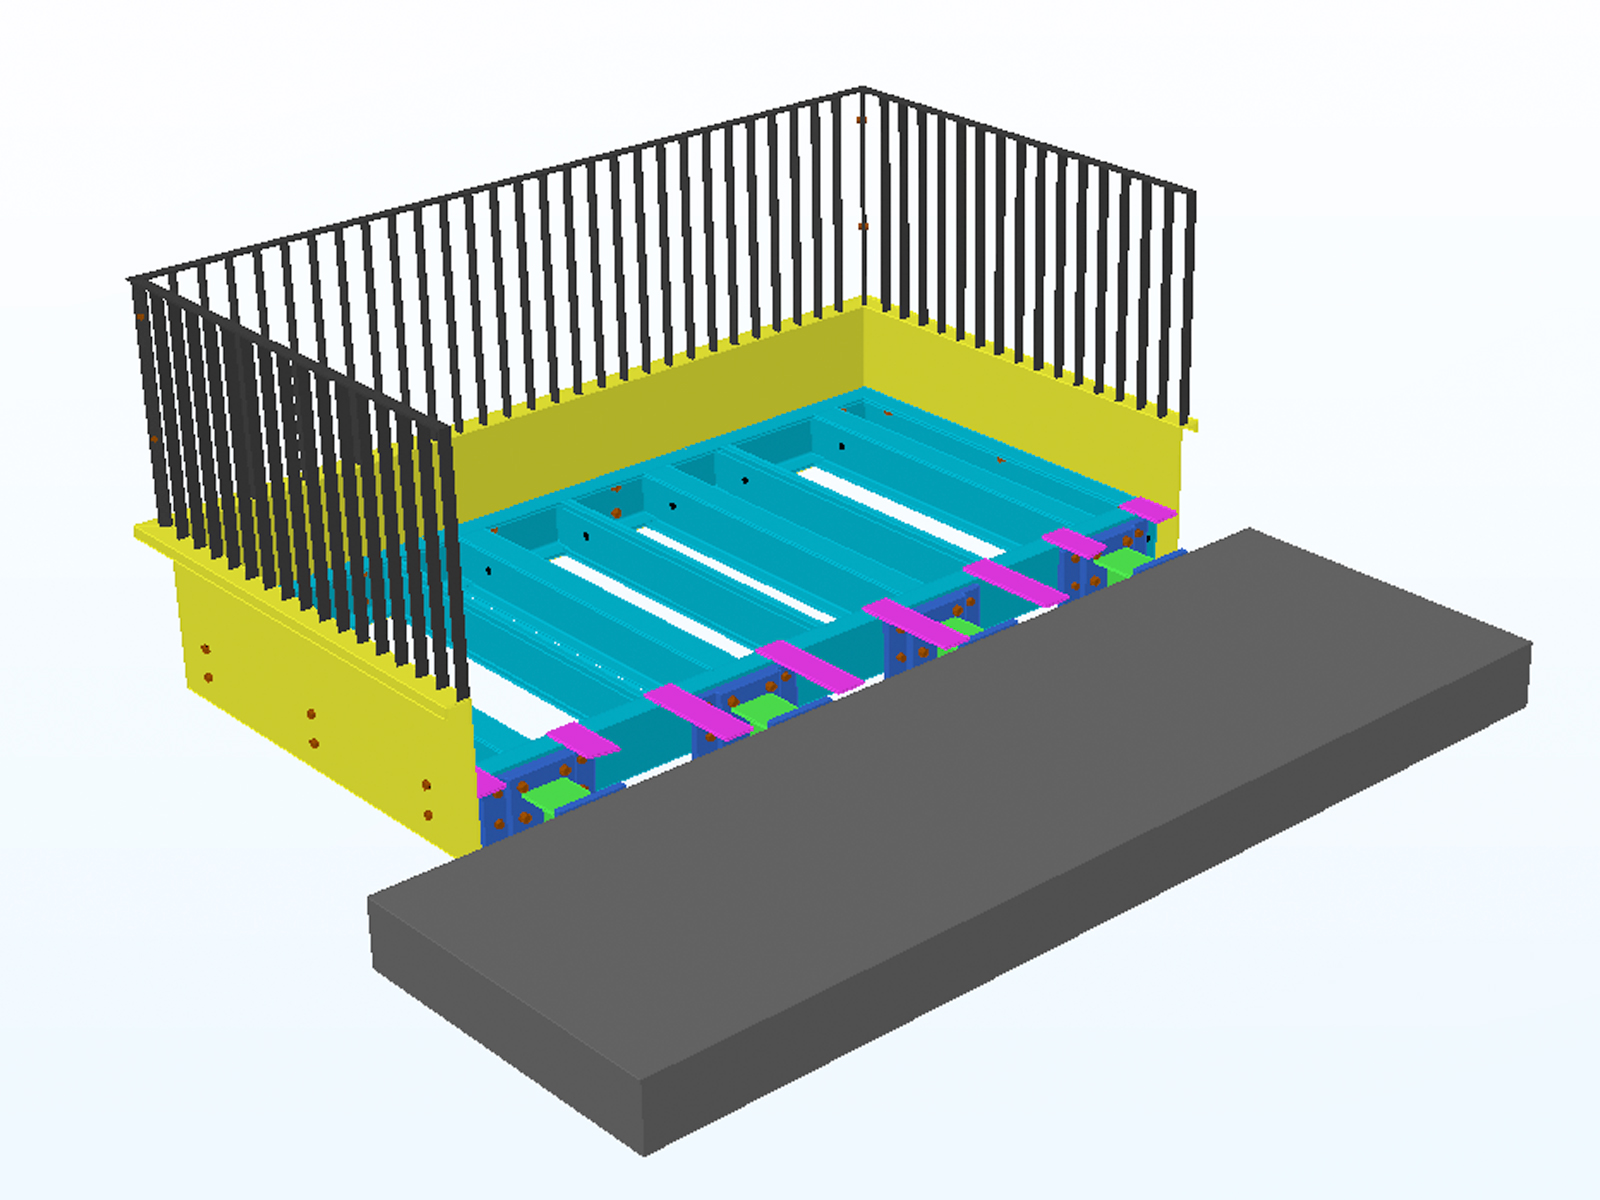 Balcony Structural Design Lally Chartered Engineers, Mayo, Ireland